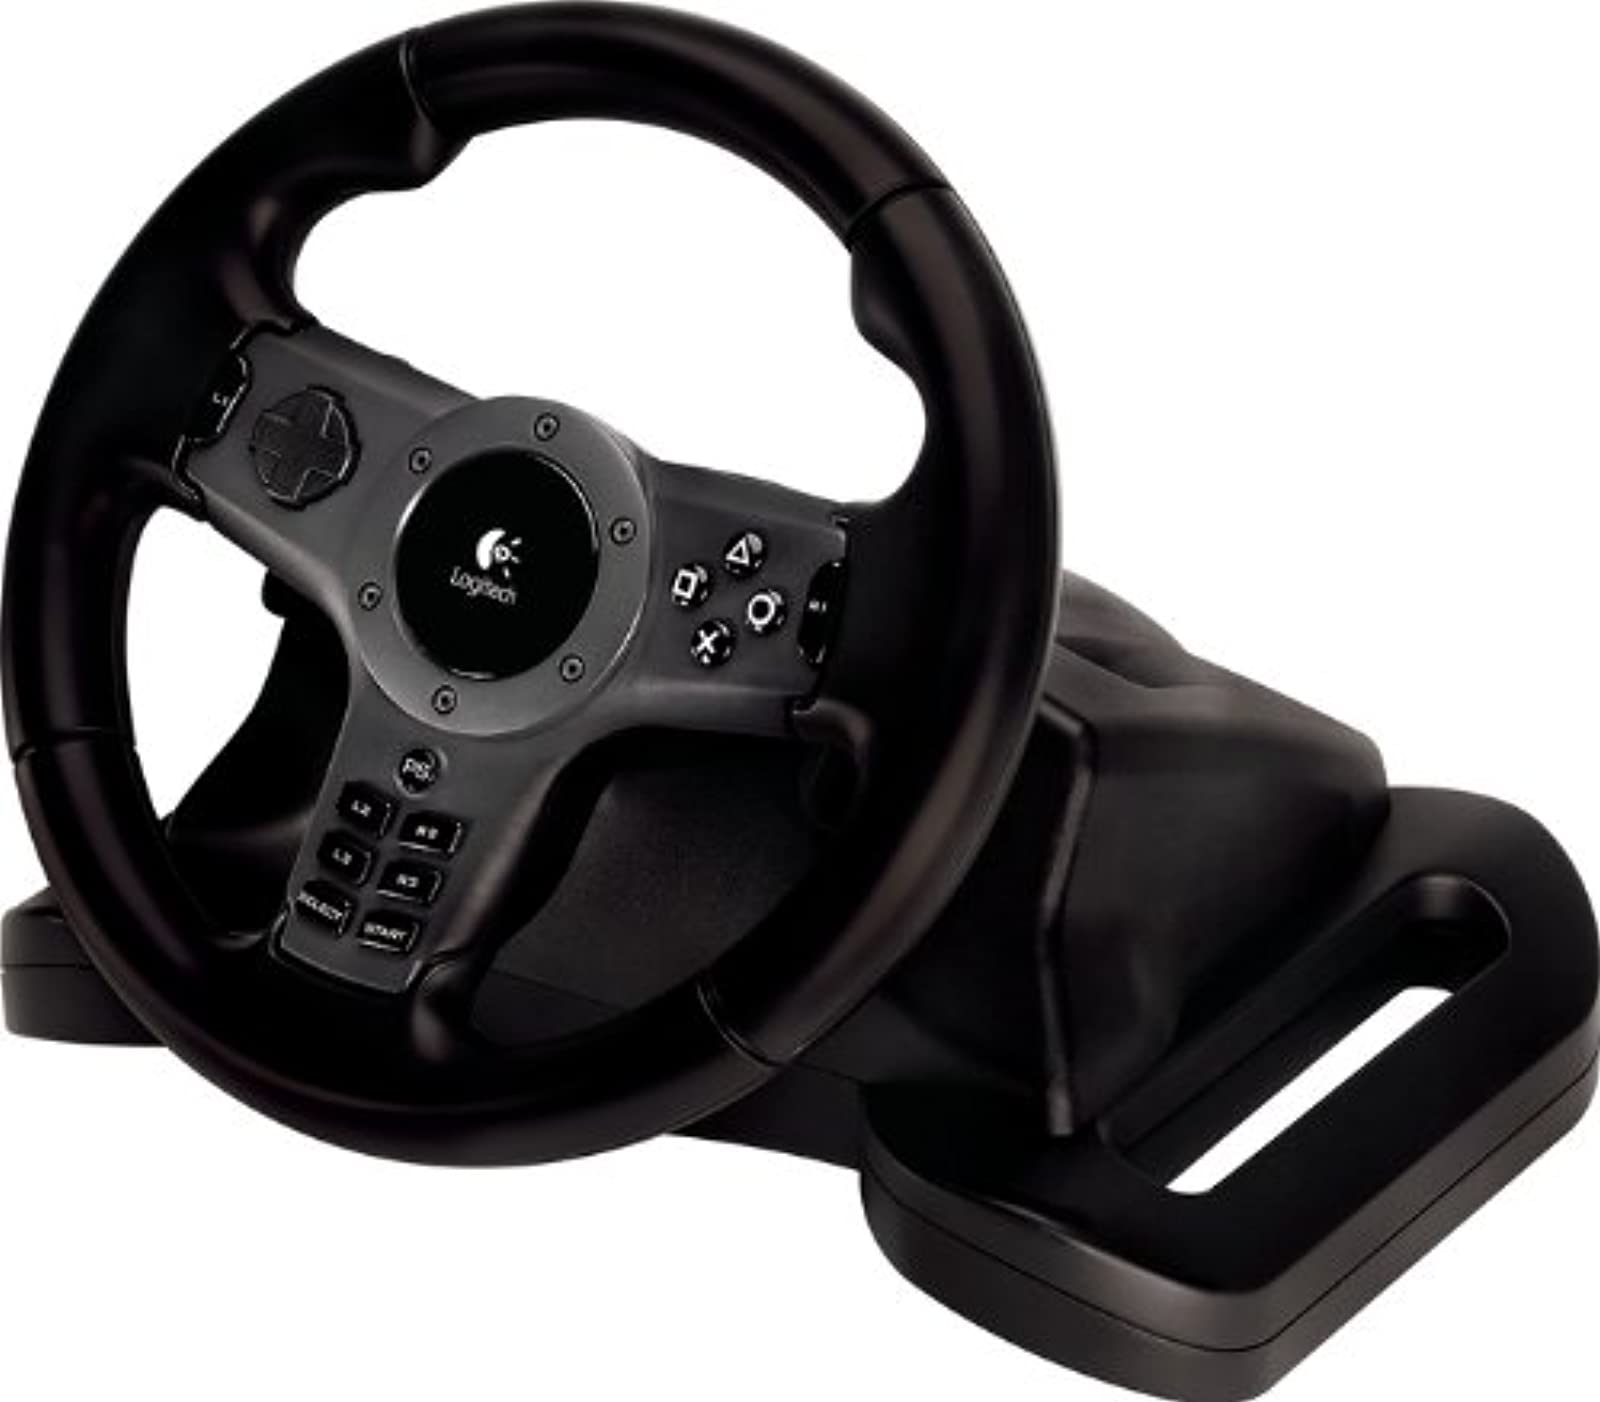 Logitech Driving Force Wireless For PS3 PS3 For PlayStation 3 Black Racing E-X5D